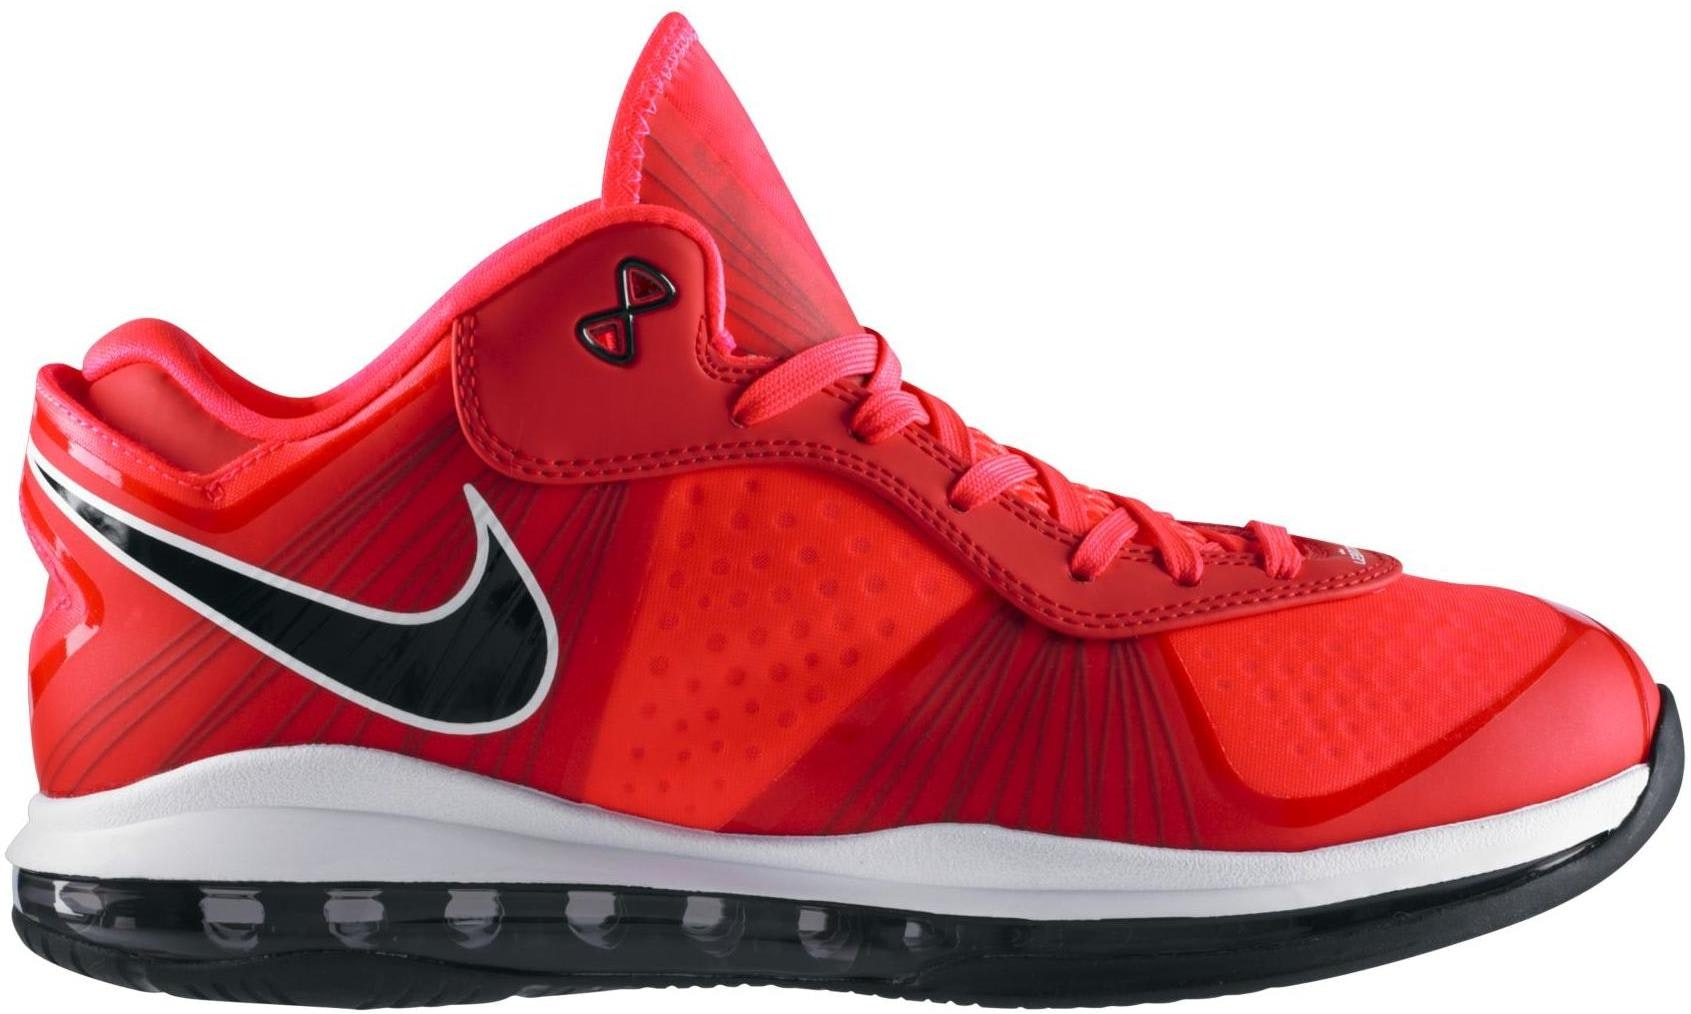 LeBron 8 V/2 Low Solar Red